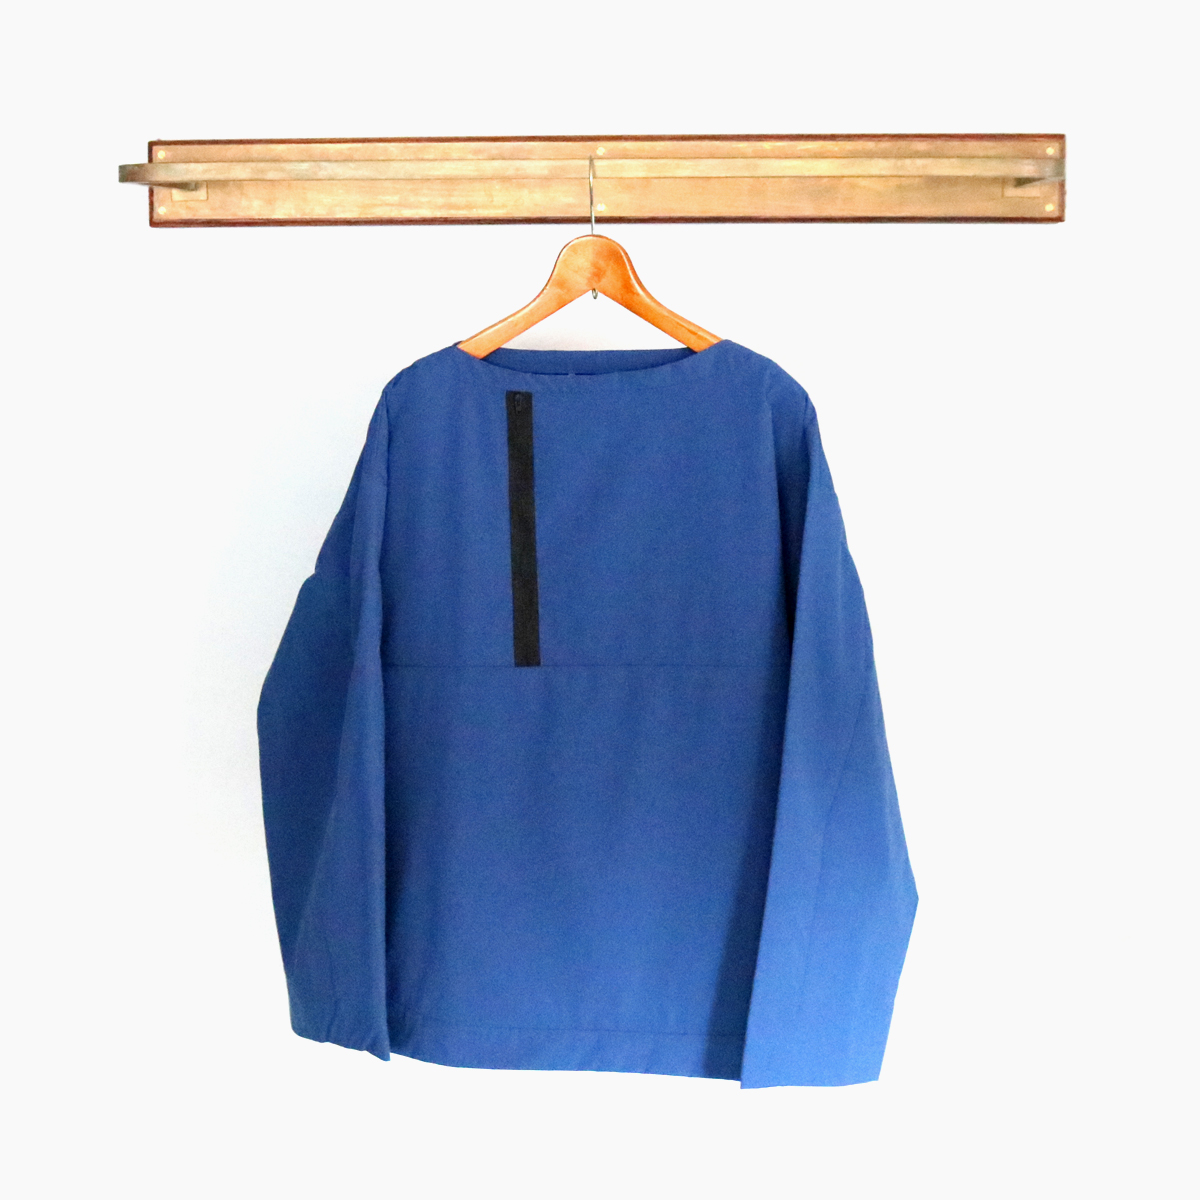 Cargo Smock – Blue|The PARKSIDE ROOM